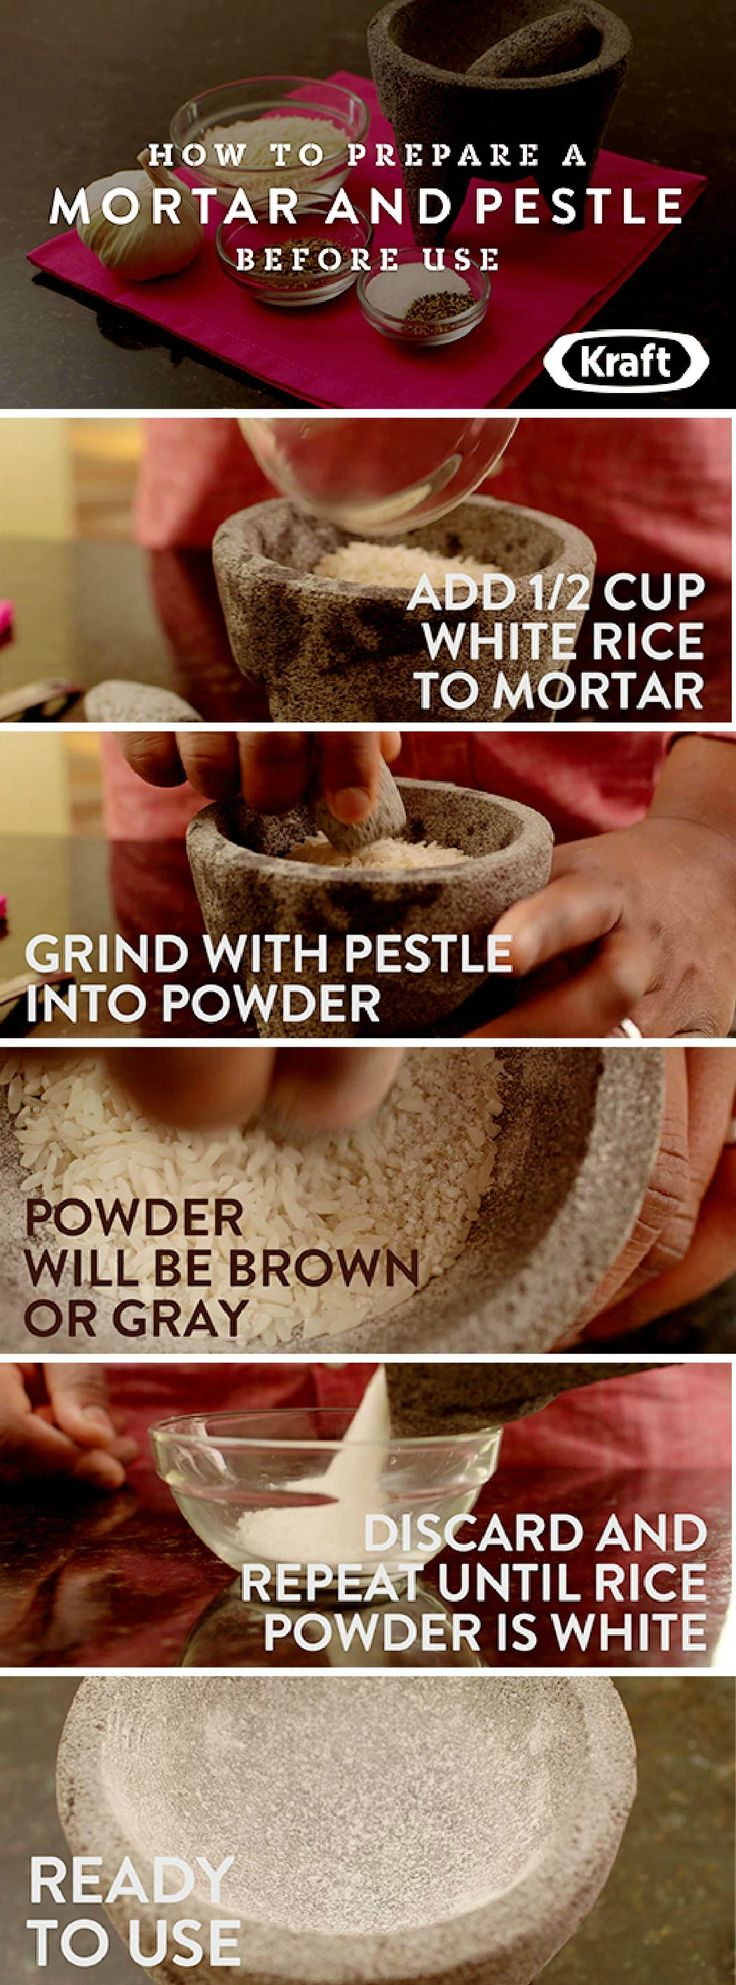 How To Prepare A Mortar And Pestle – You just got a mortar and pestle? Learn how to properly prepare it before use with this helpful tutorial!